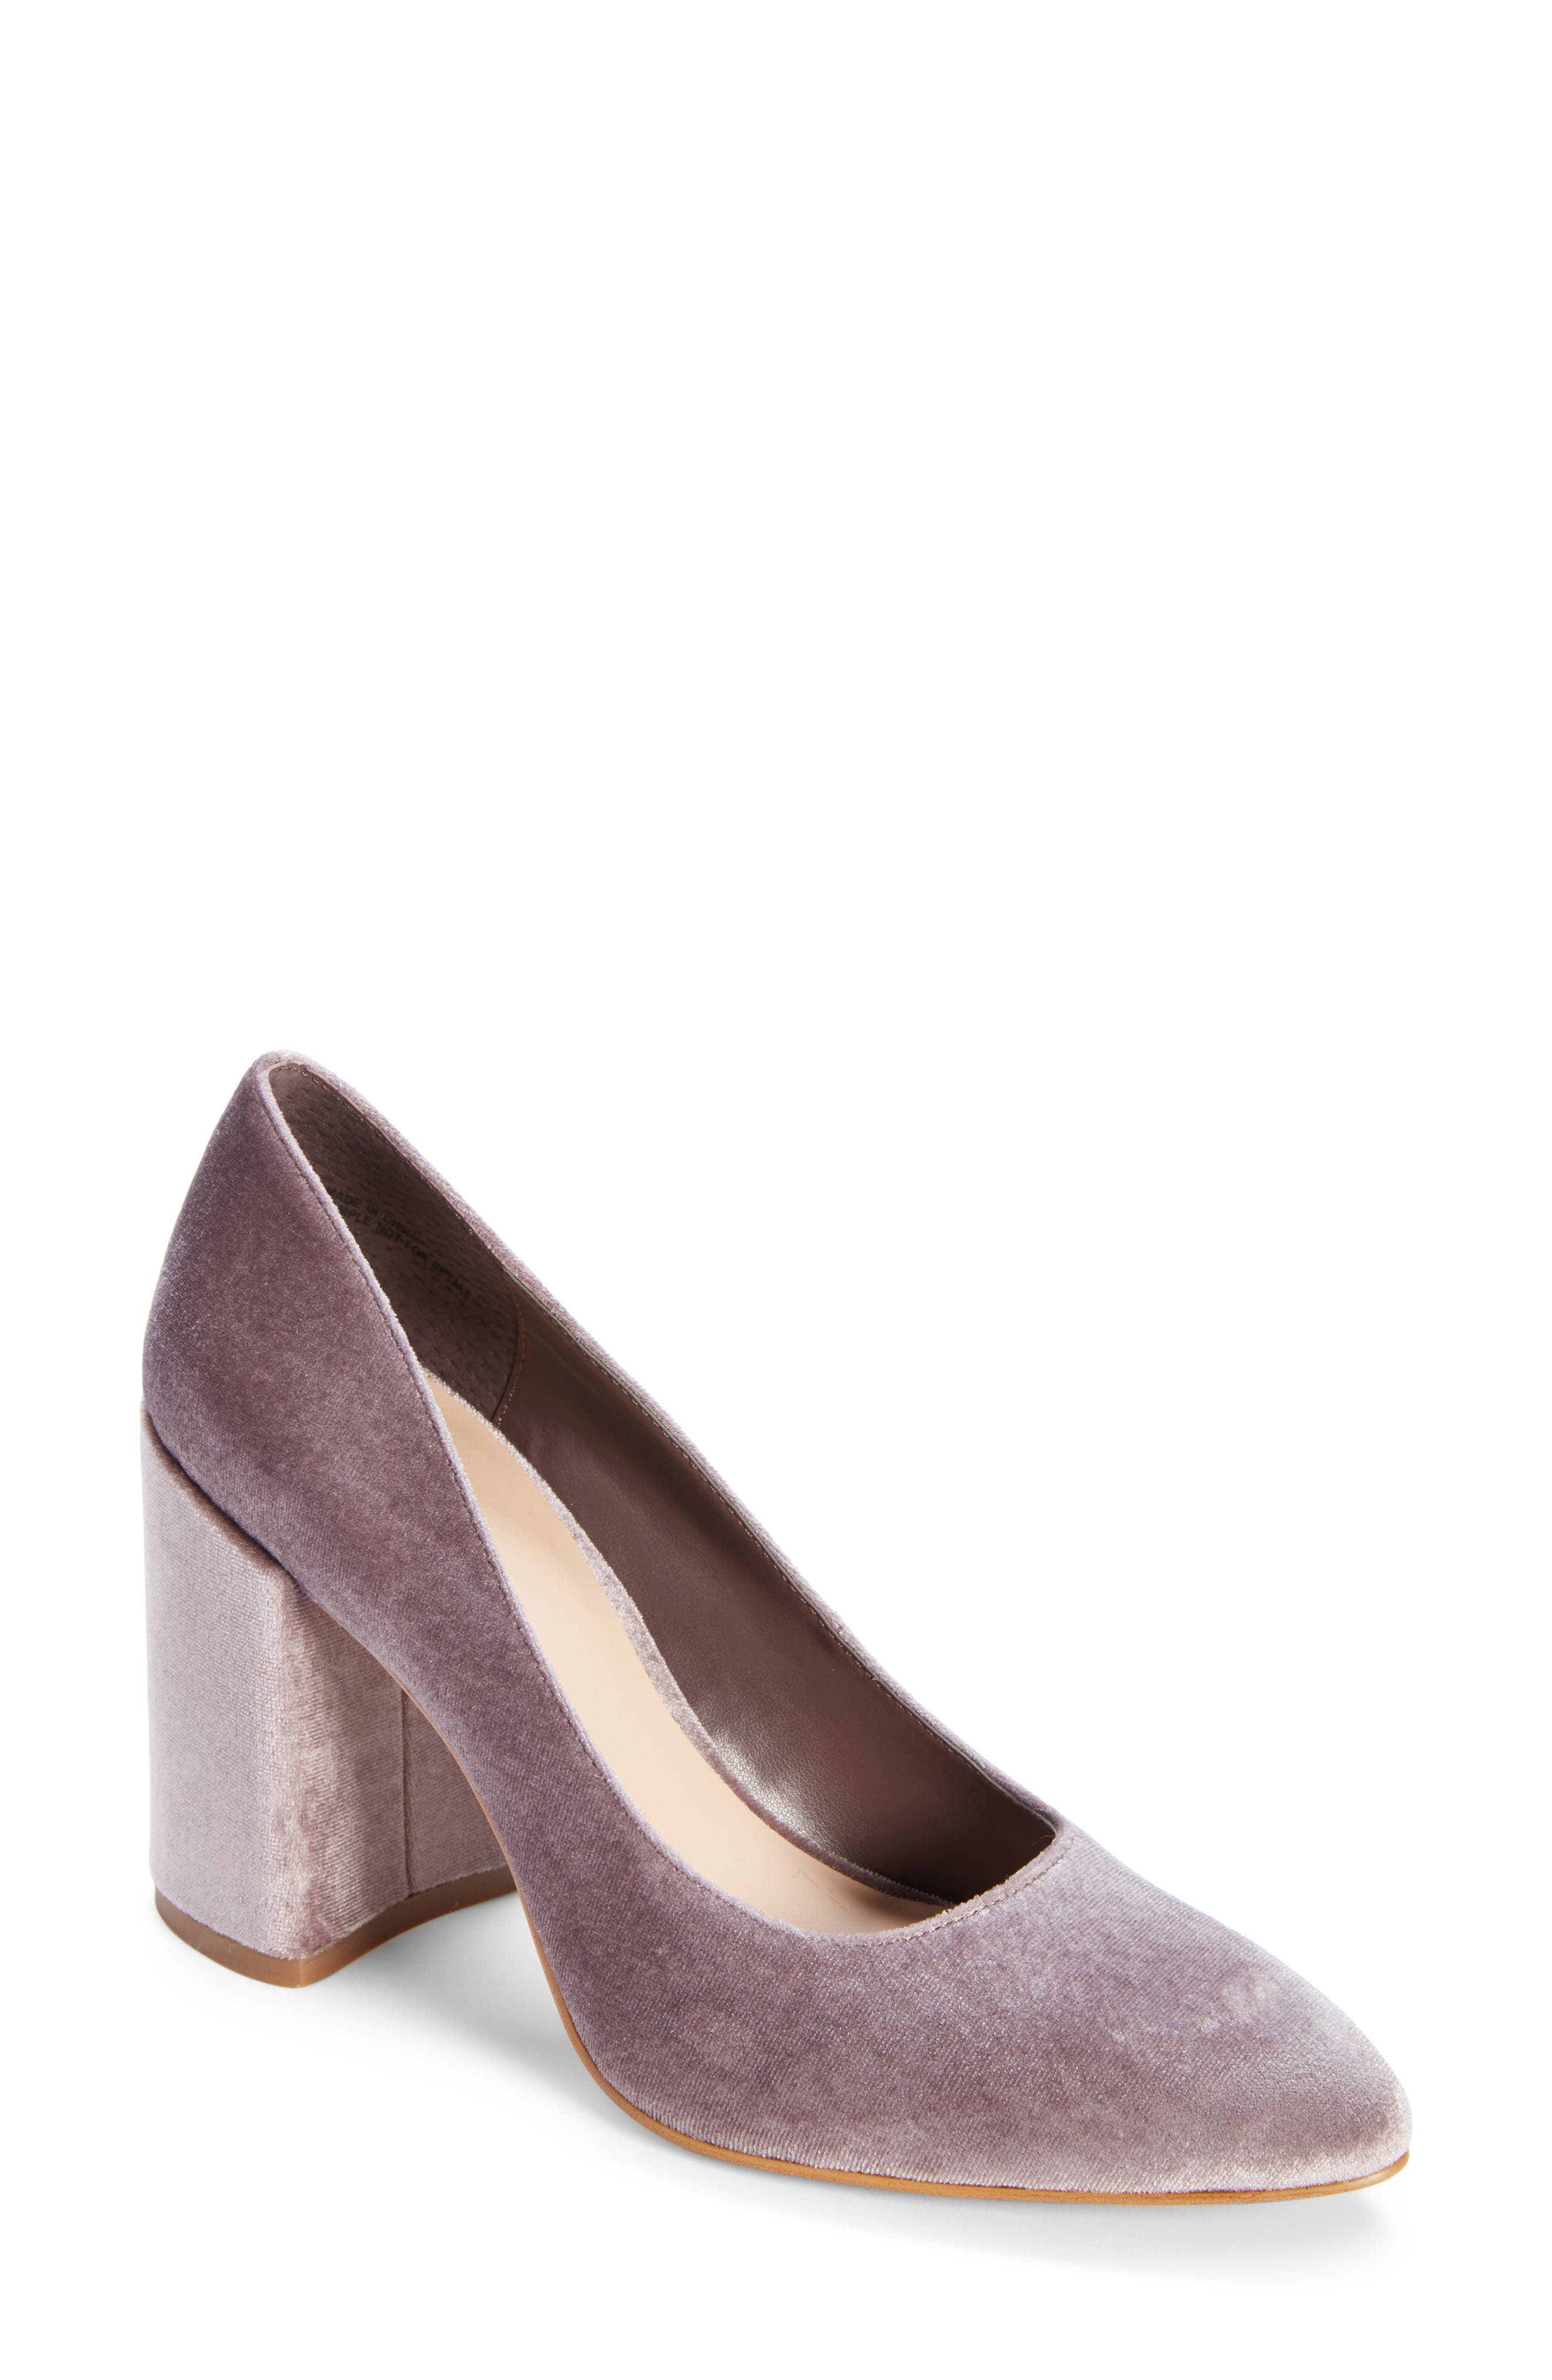 LEITH Nik Block Heel Pump, Main, color, 257